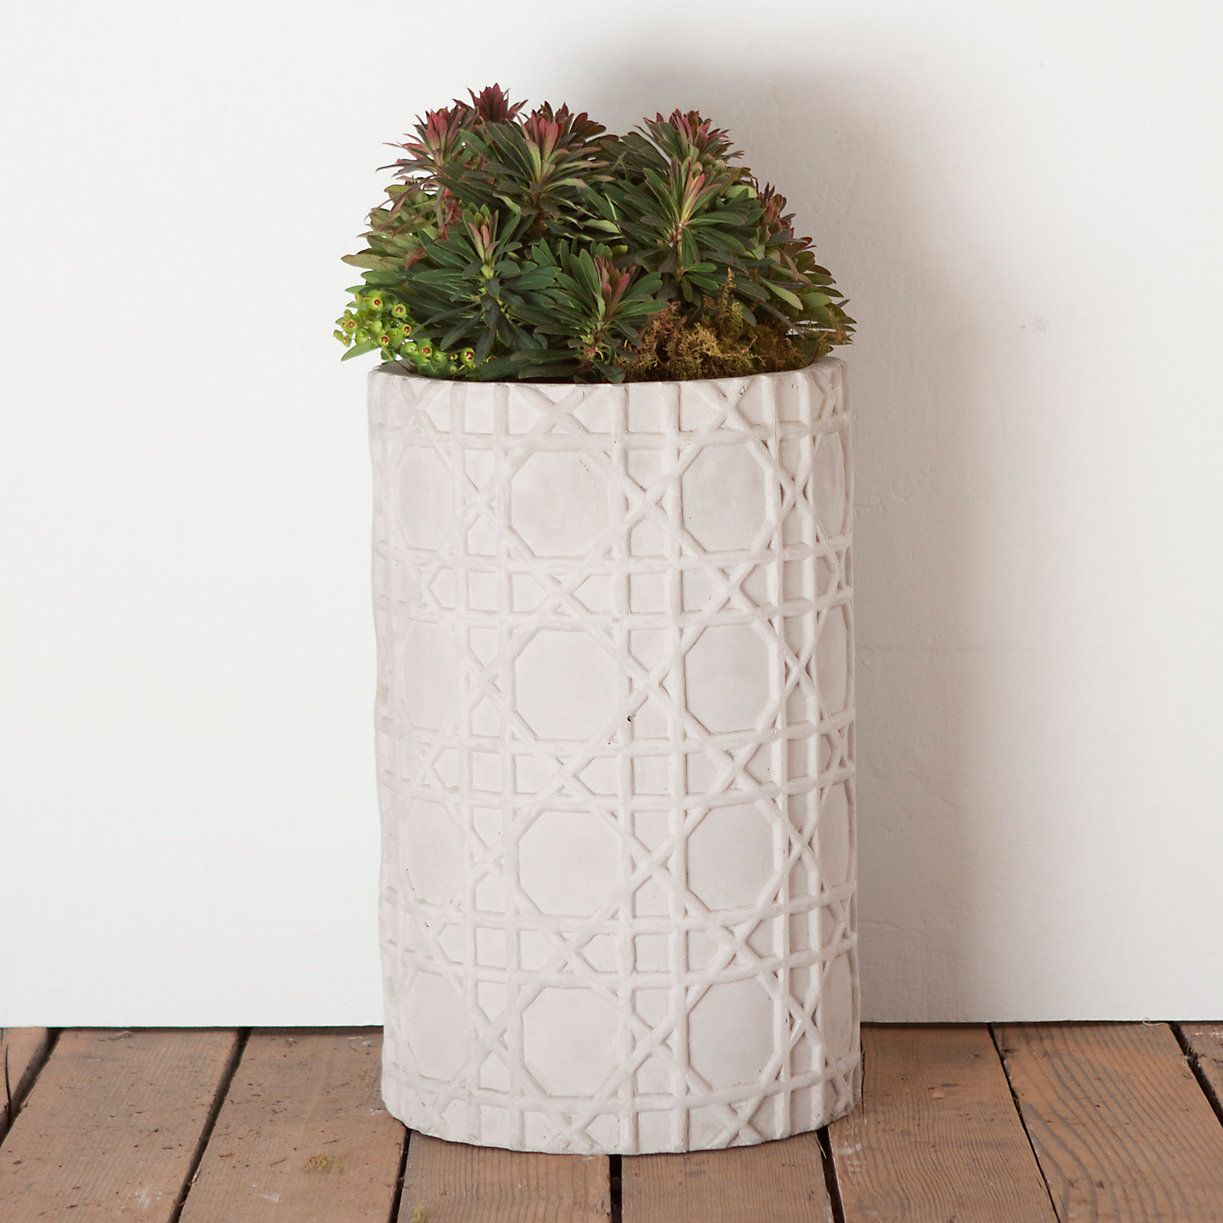 The Best Place To Buy Planters Terrain Products For The Home